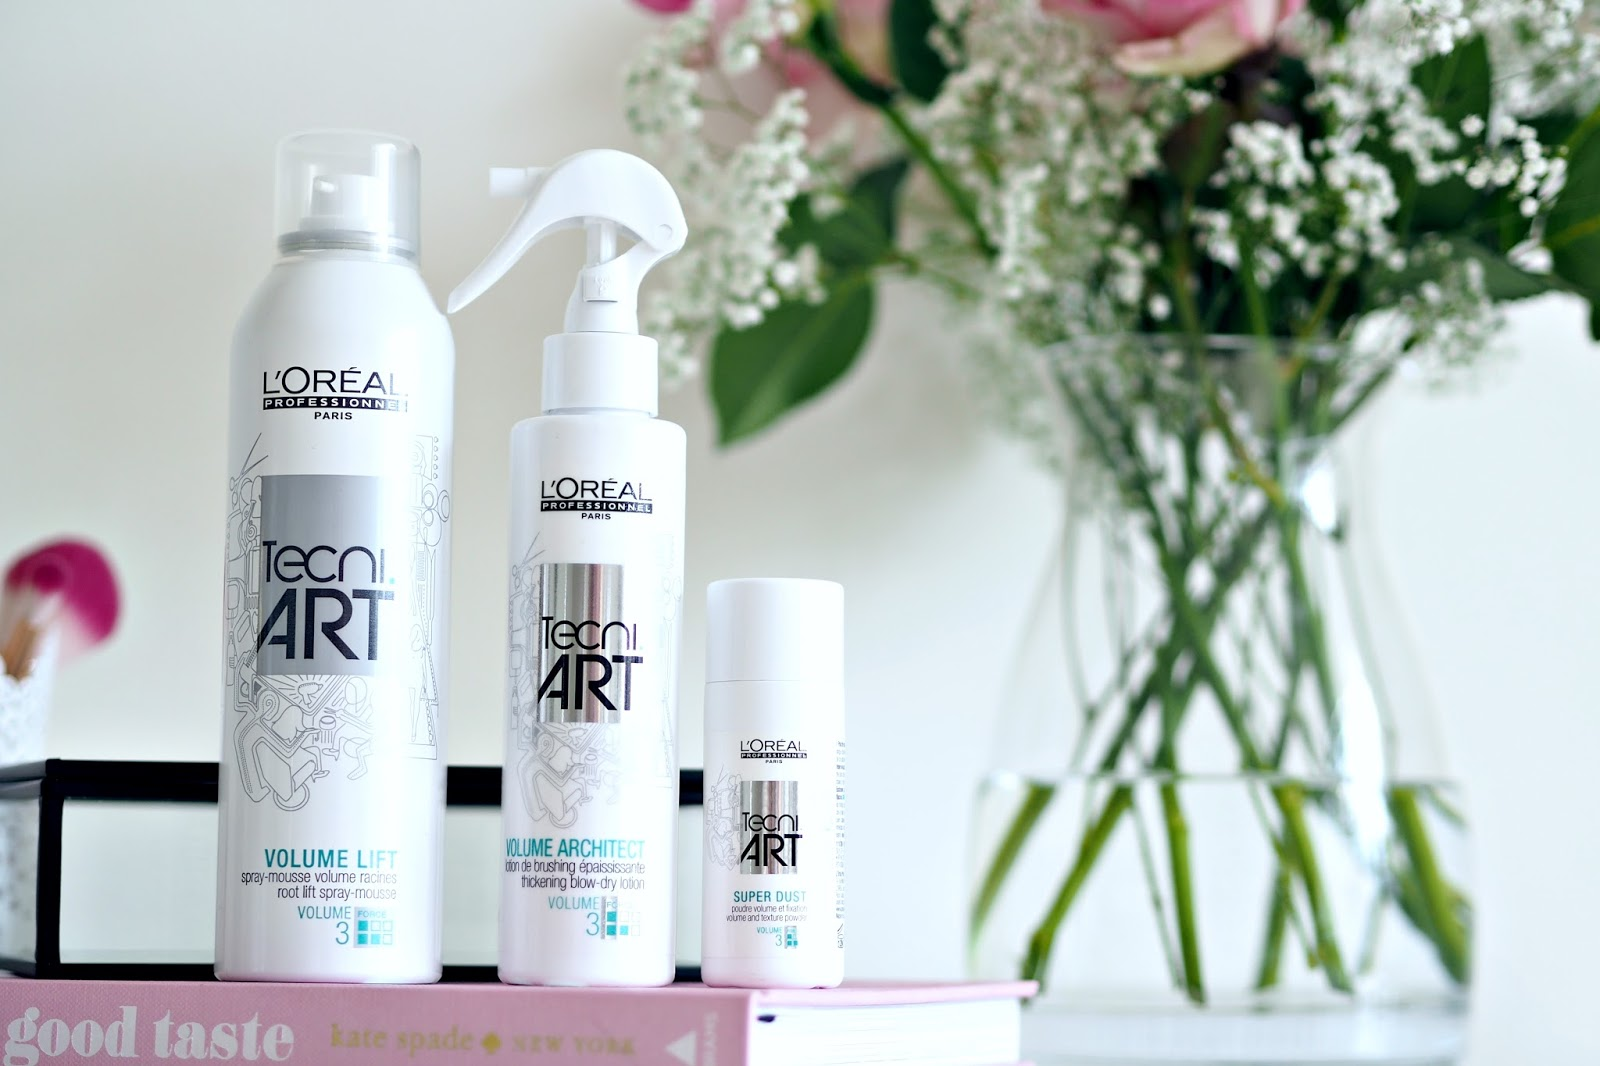 Loreal Tecni Art products - Volume lift, volume architect and super dust